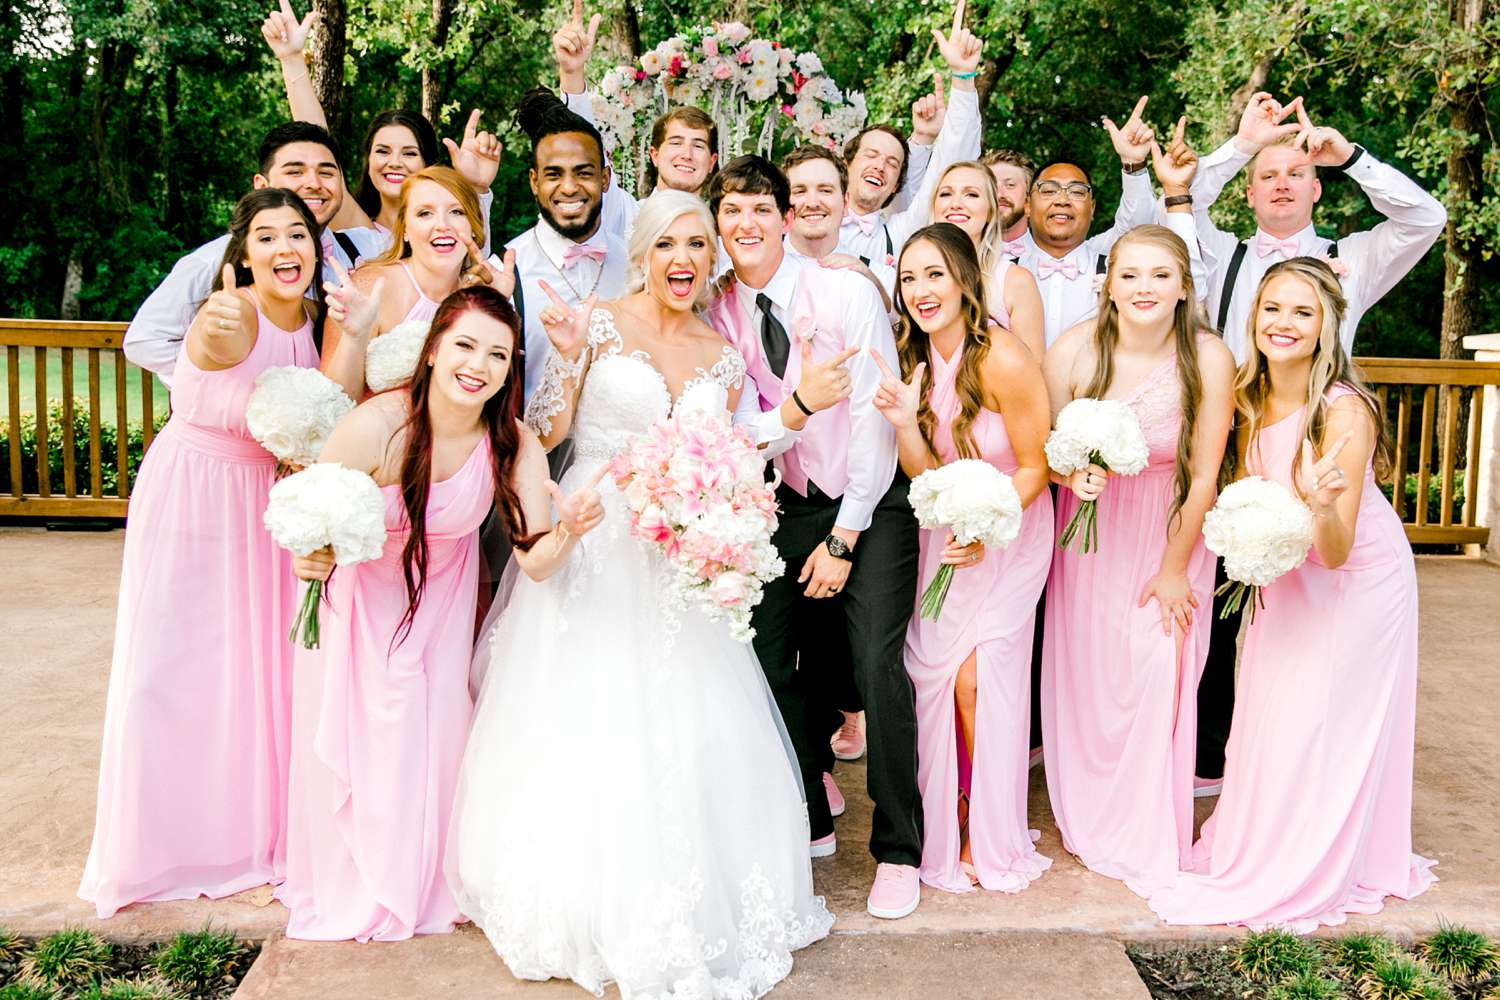 JESSICA+LYLE+NEEL+THE_SPRINGS_EVENTS_WEDDING_OKLAHOMA_ALLEEJ_PHOTOGRAPHER_0079.jpg